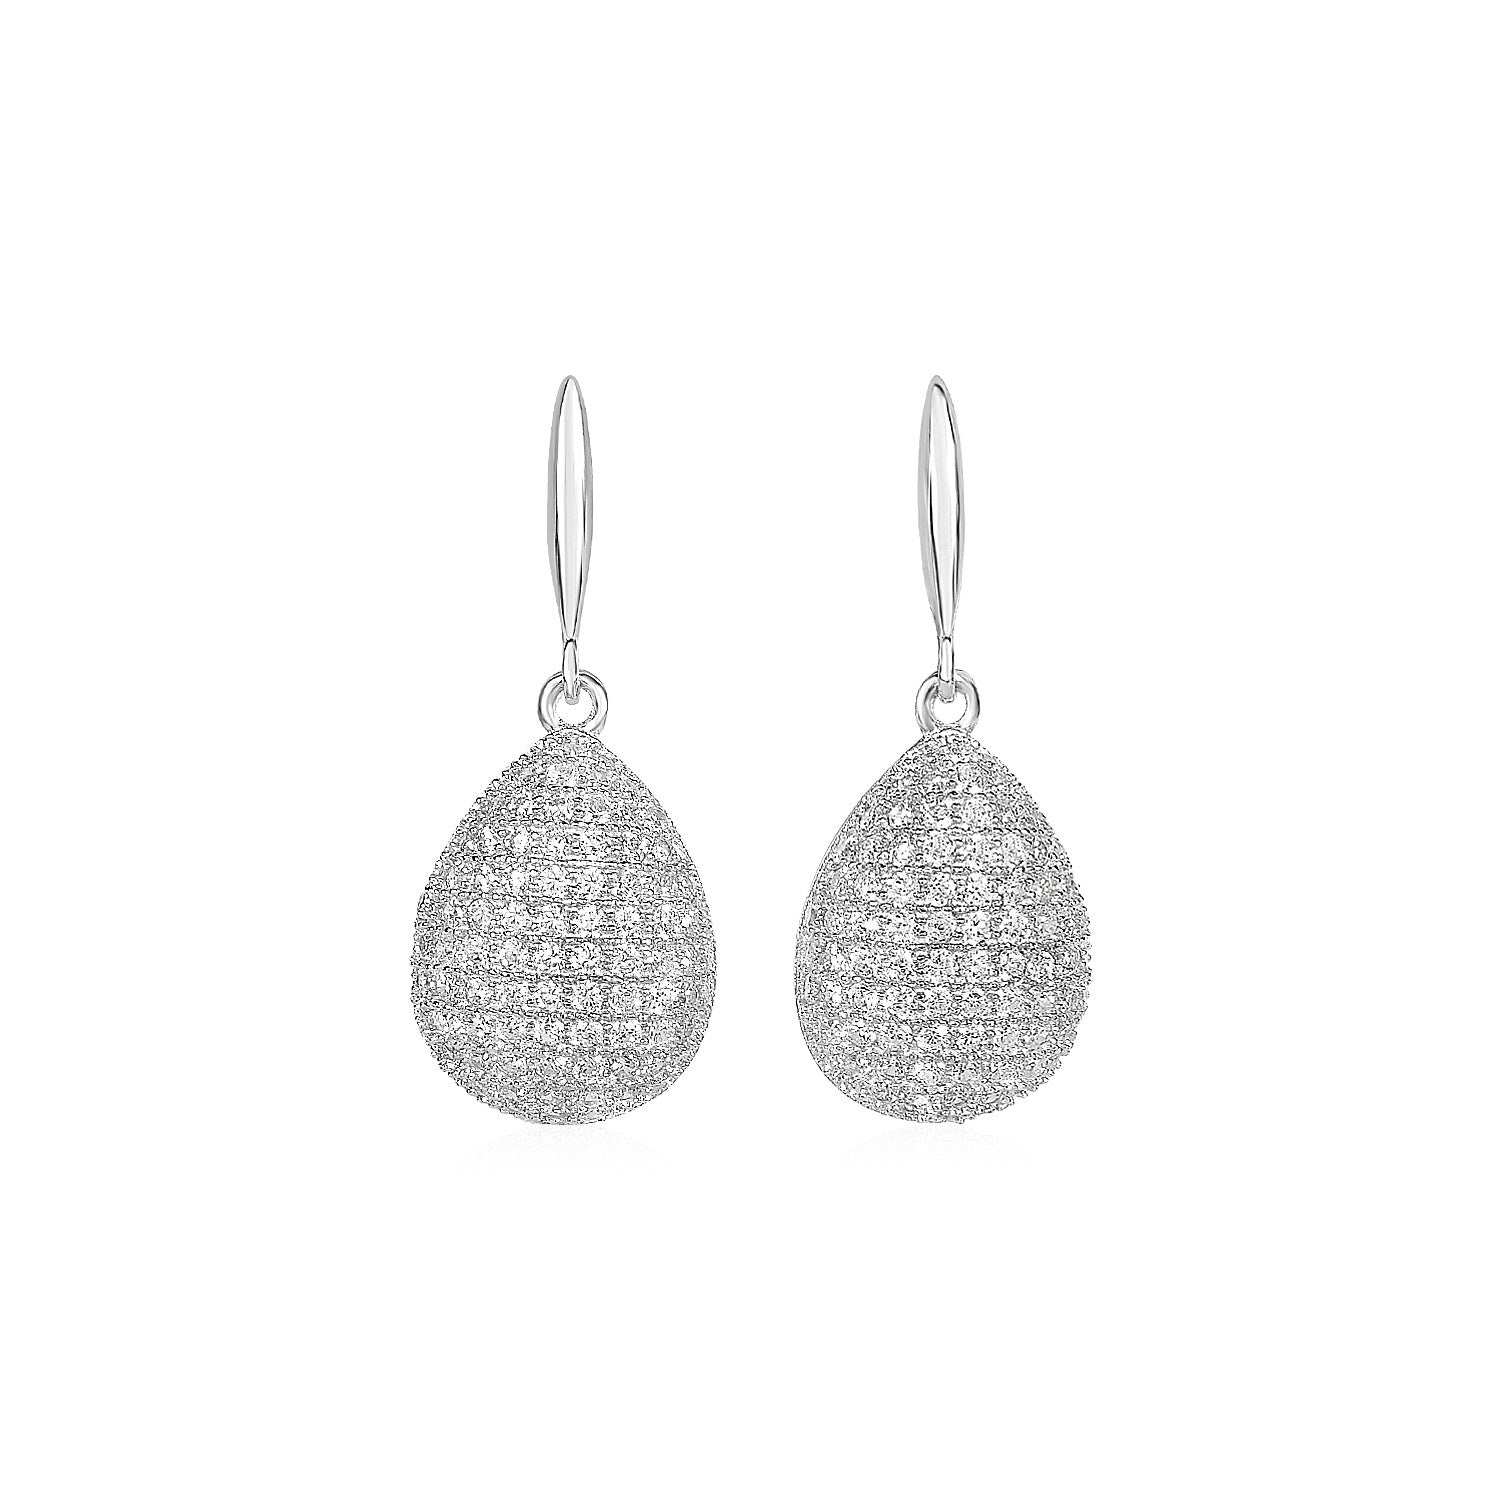 Original New York Style  Puffed Teardrop Earrings with Cubic Zirconia in Sterling Silver